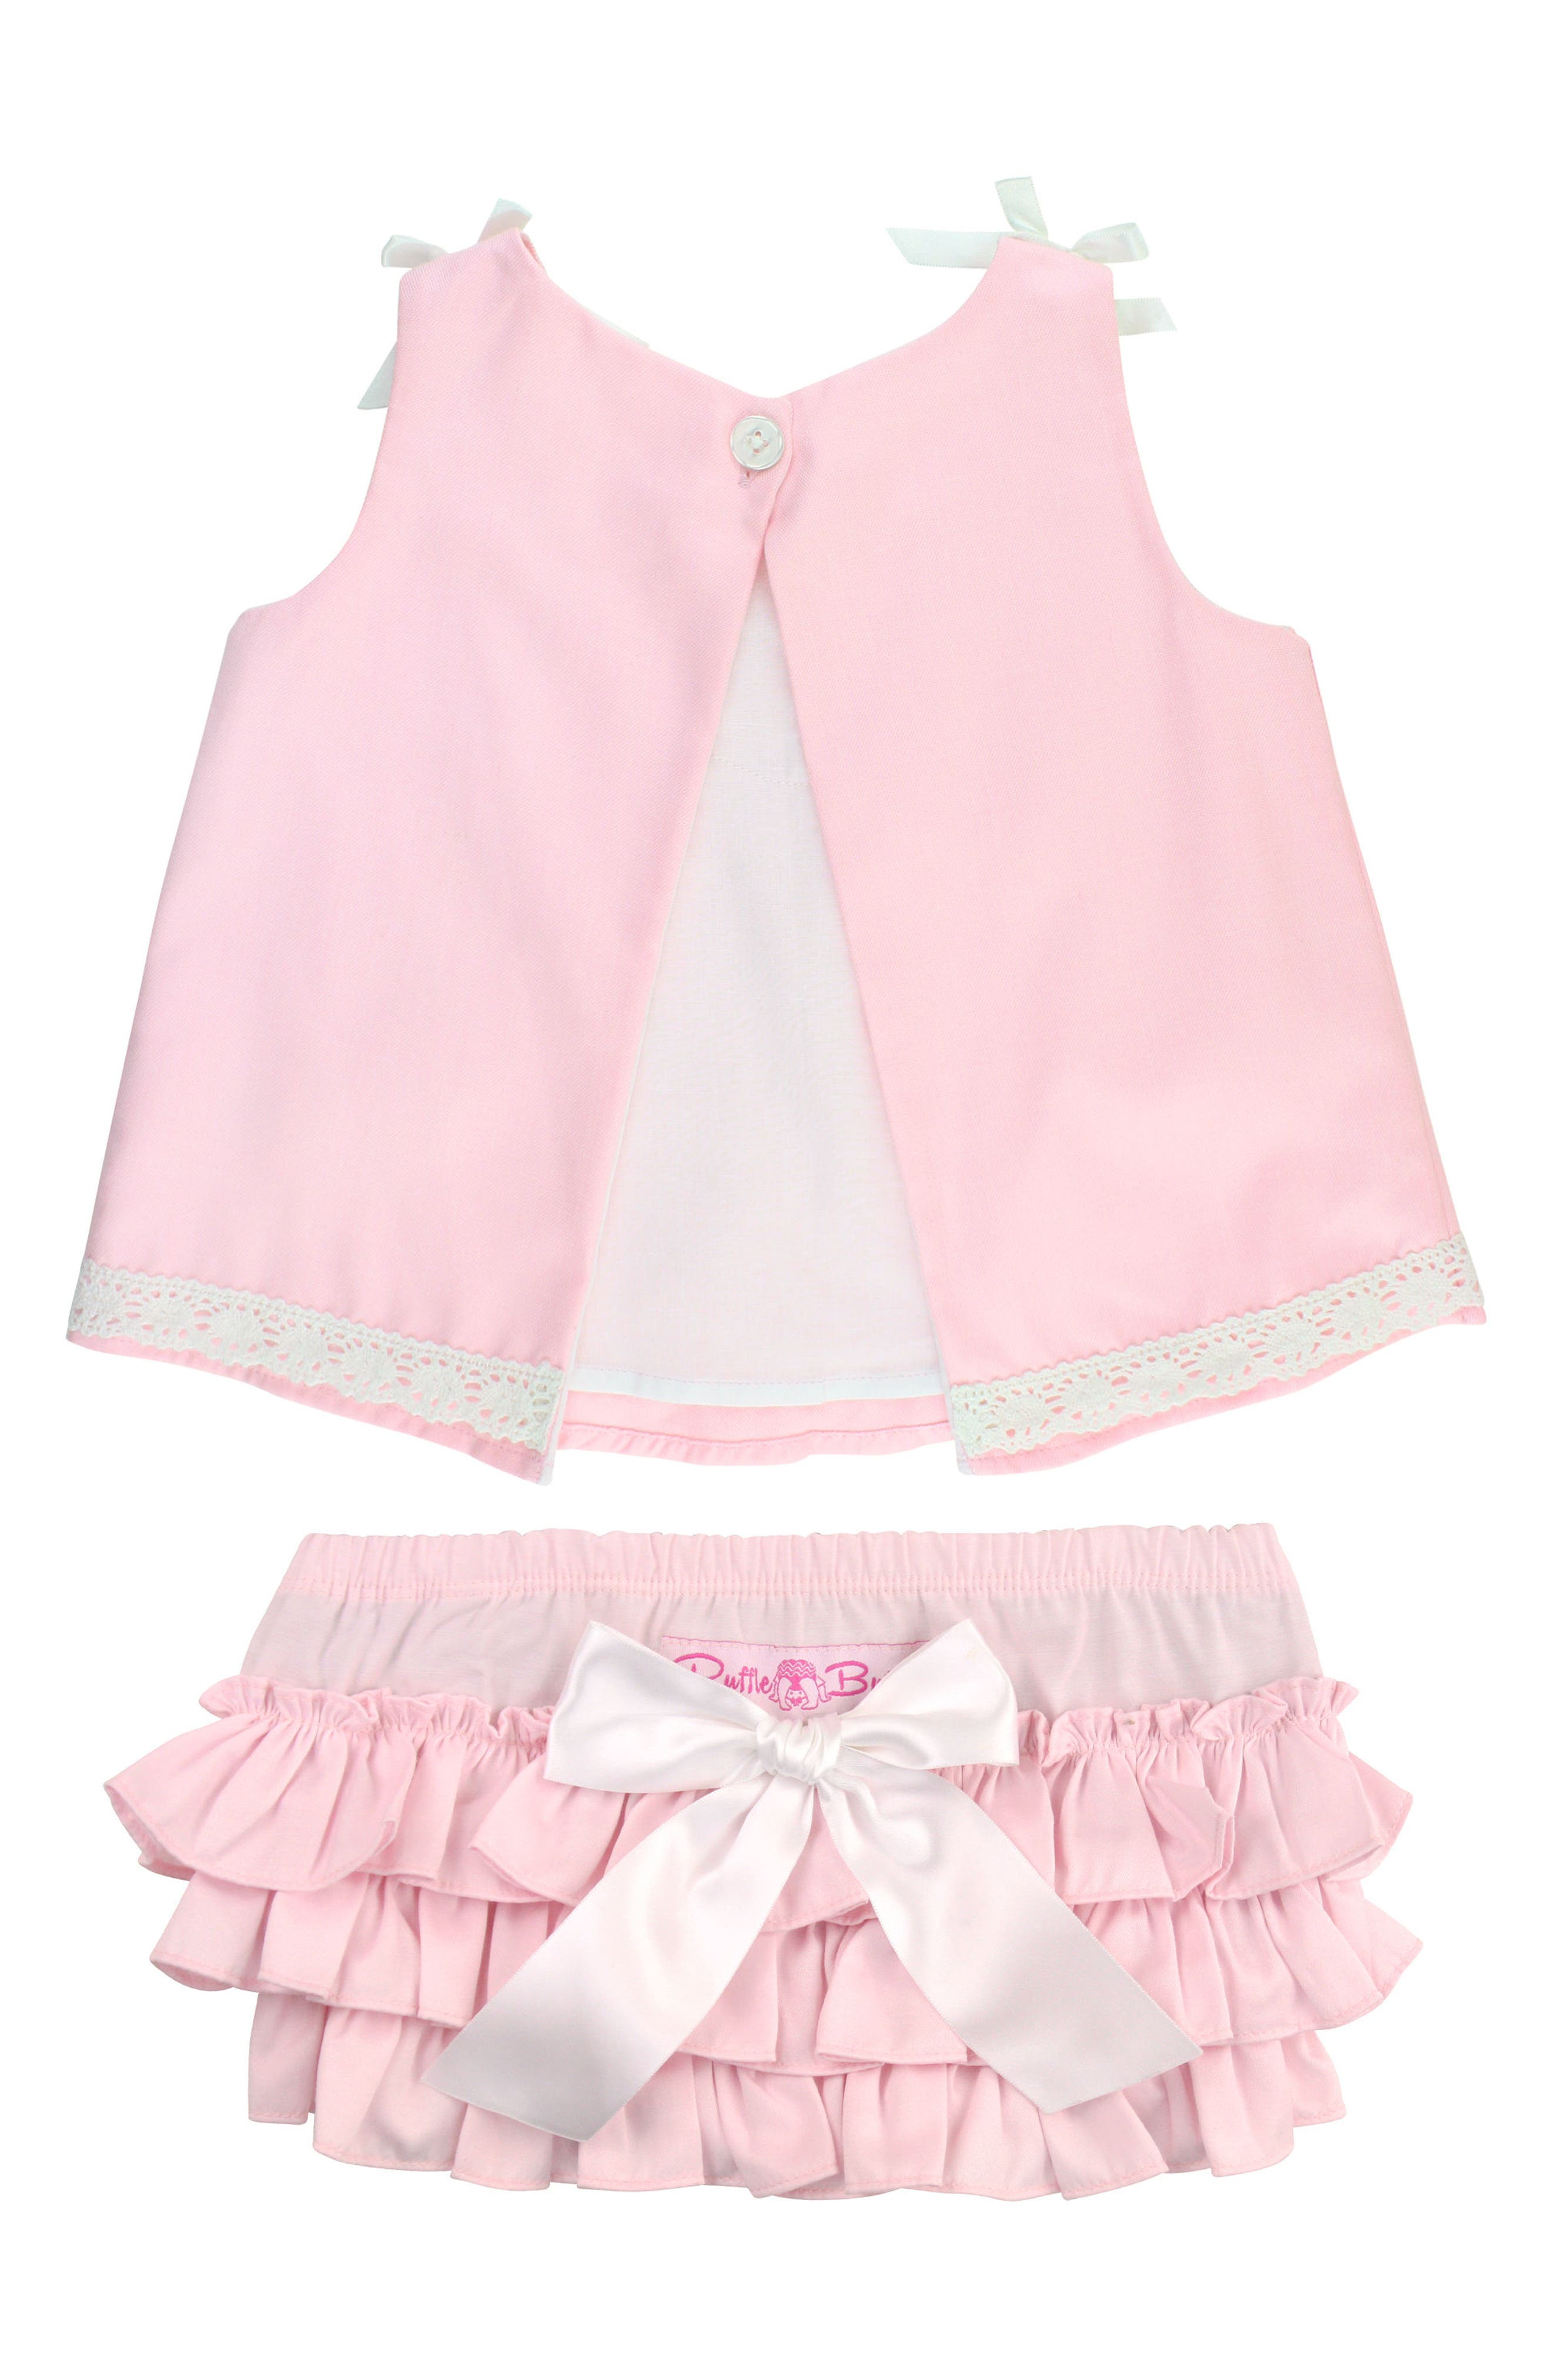 Chambray Swing Top & Ruffle Bloomers Set,                             Alternate thumbnail 2, color,                             Pink